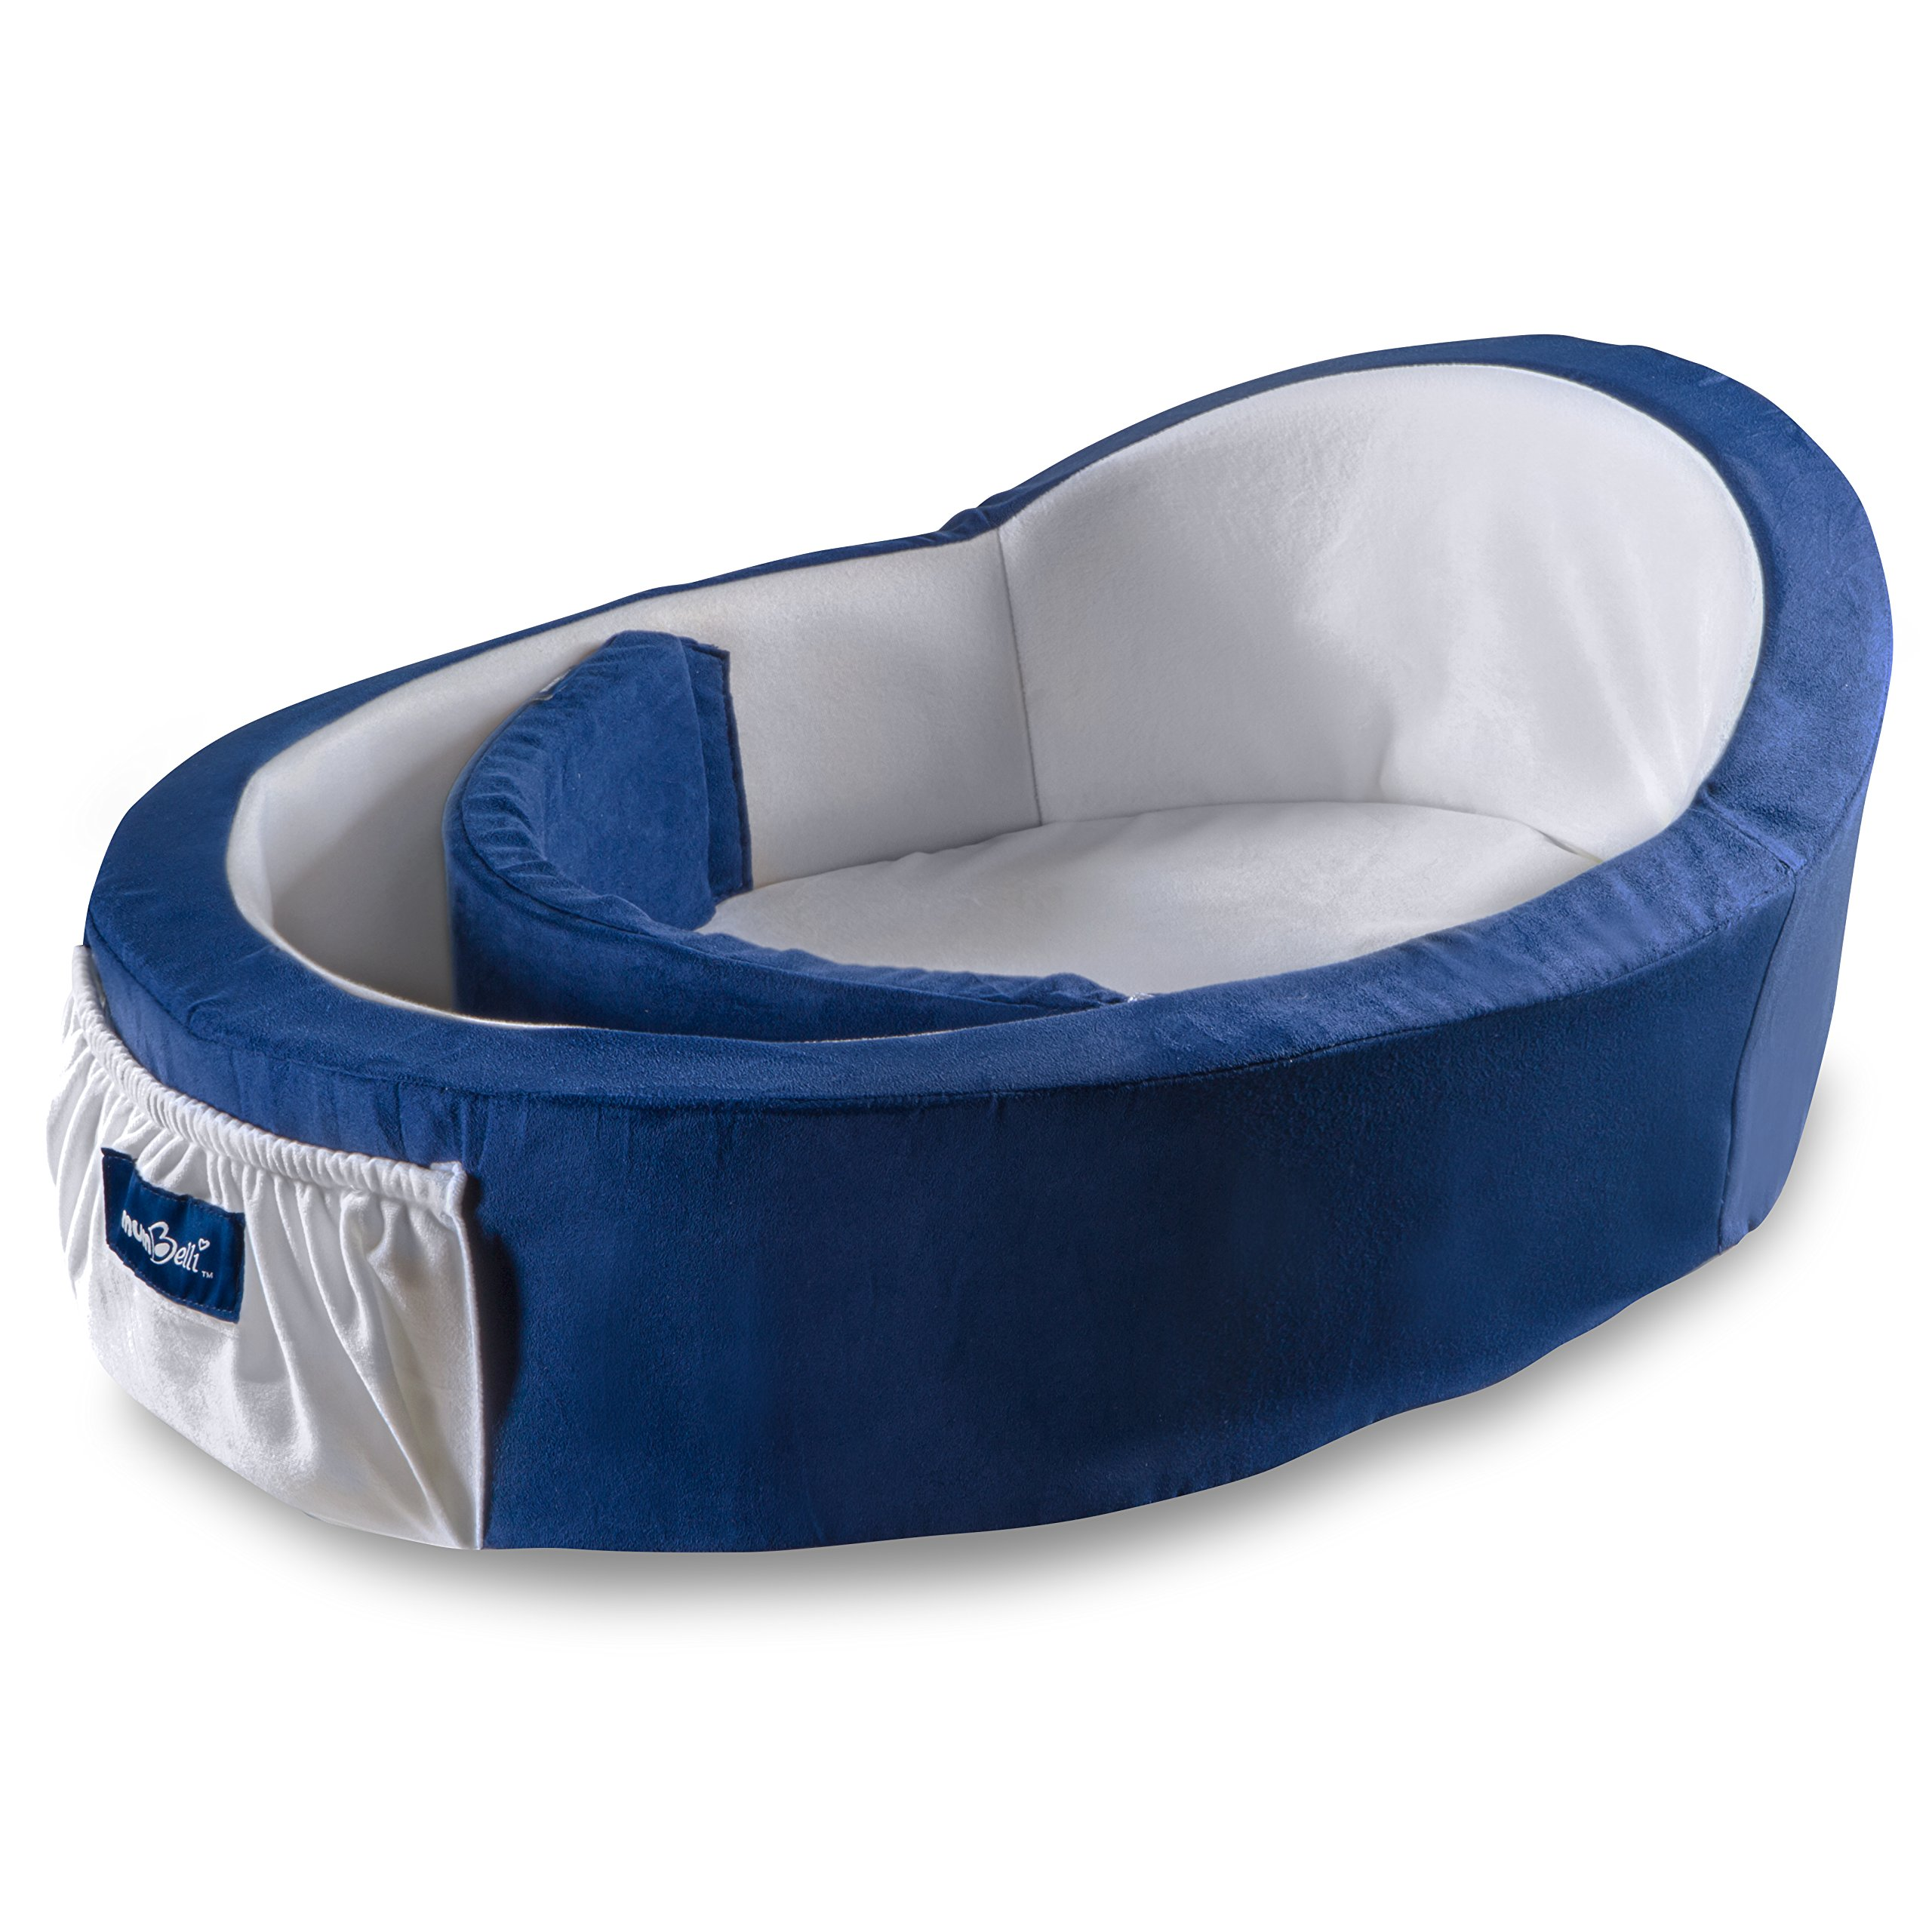 Mumbelli – The only Womb-Like and Adjustable Infant Bed; Patented Design (Nautical). Use as a Sleep transitioner, Lounger and co Sleeping. Reflux Wedge and Carry Bag Included.